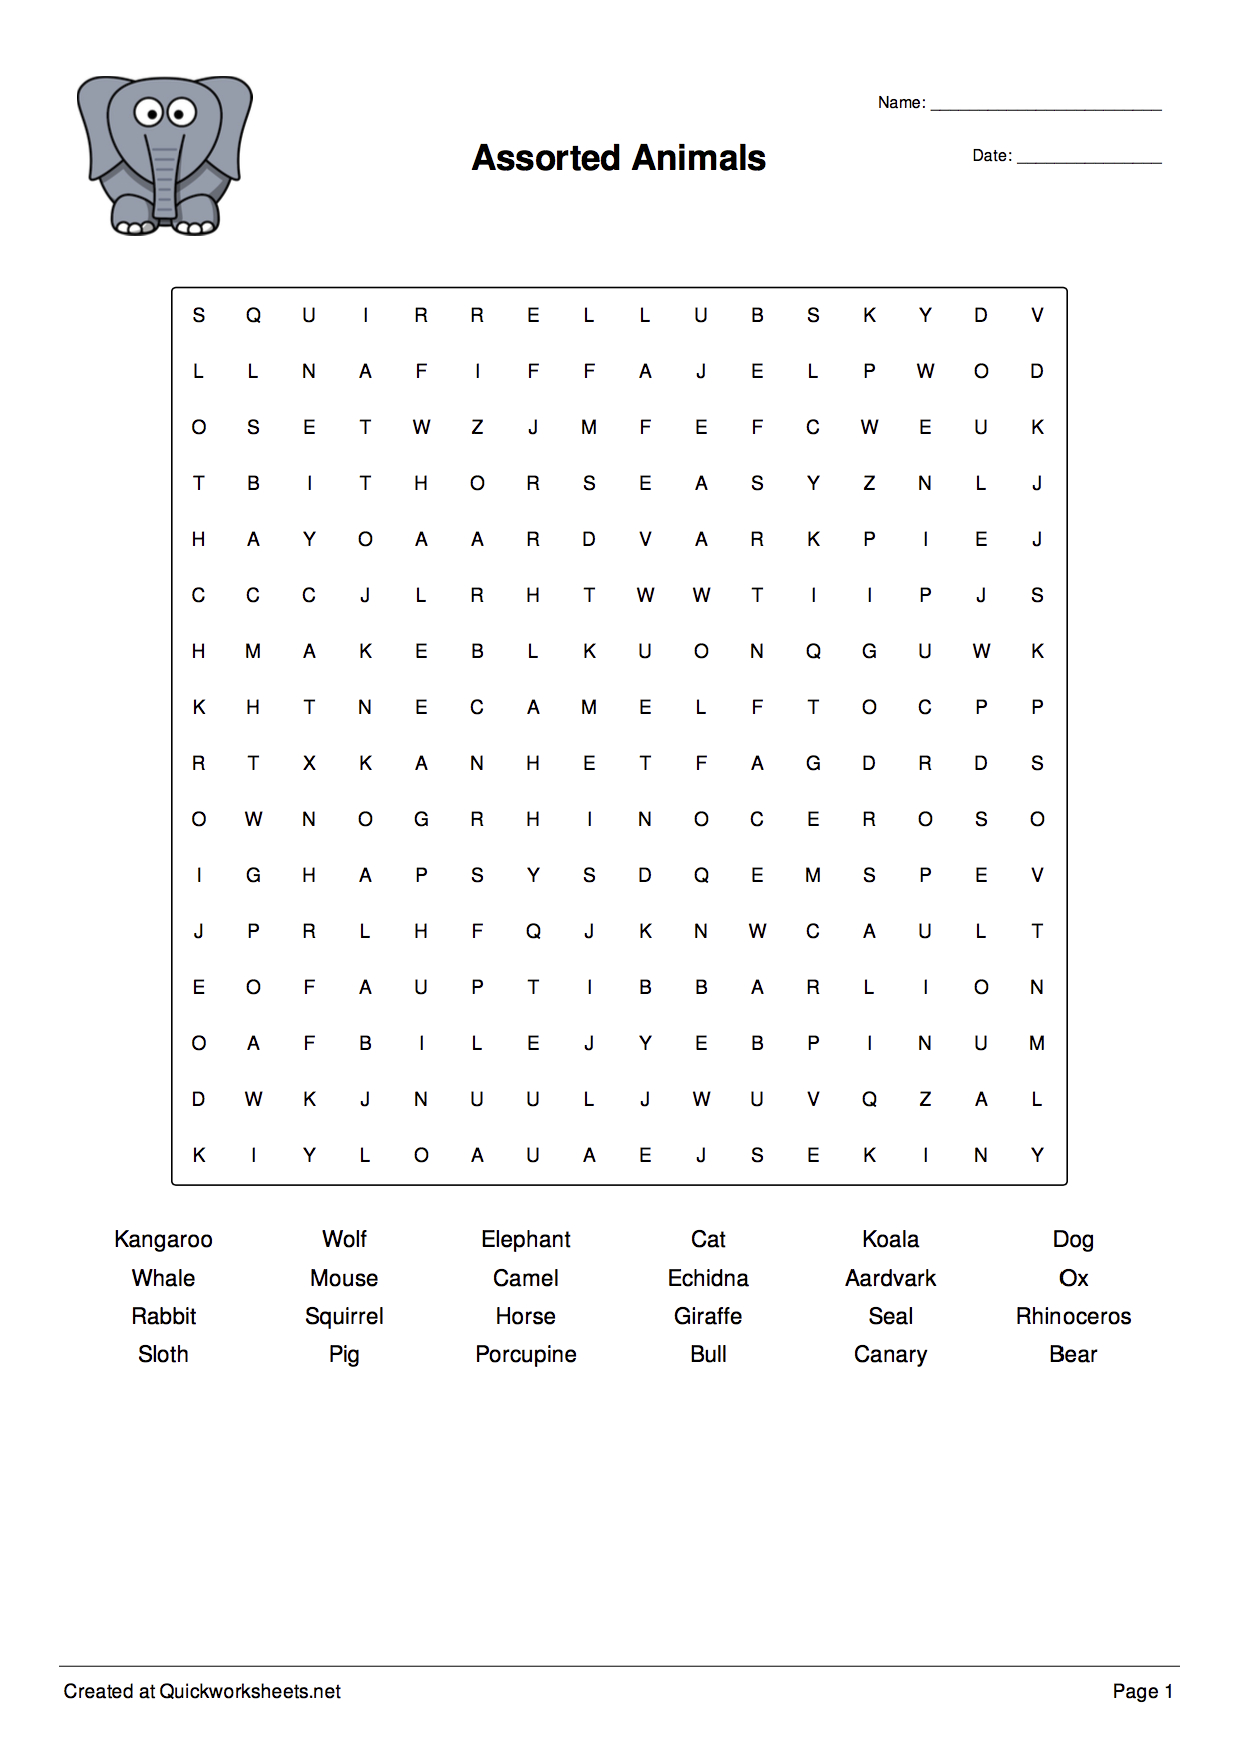 Word Scramble, Wordsearch, Crossword, Matching Pairs And Other - Free Printable Spelling Worksheet Generator